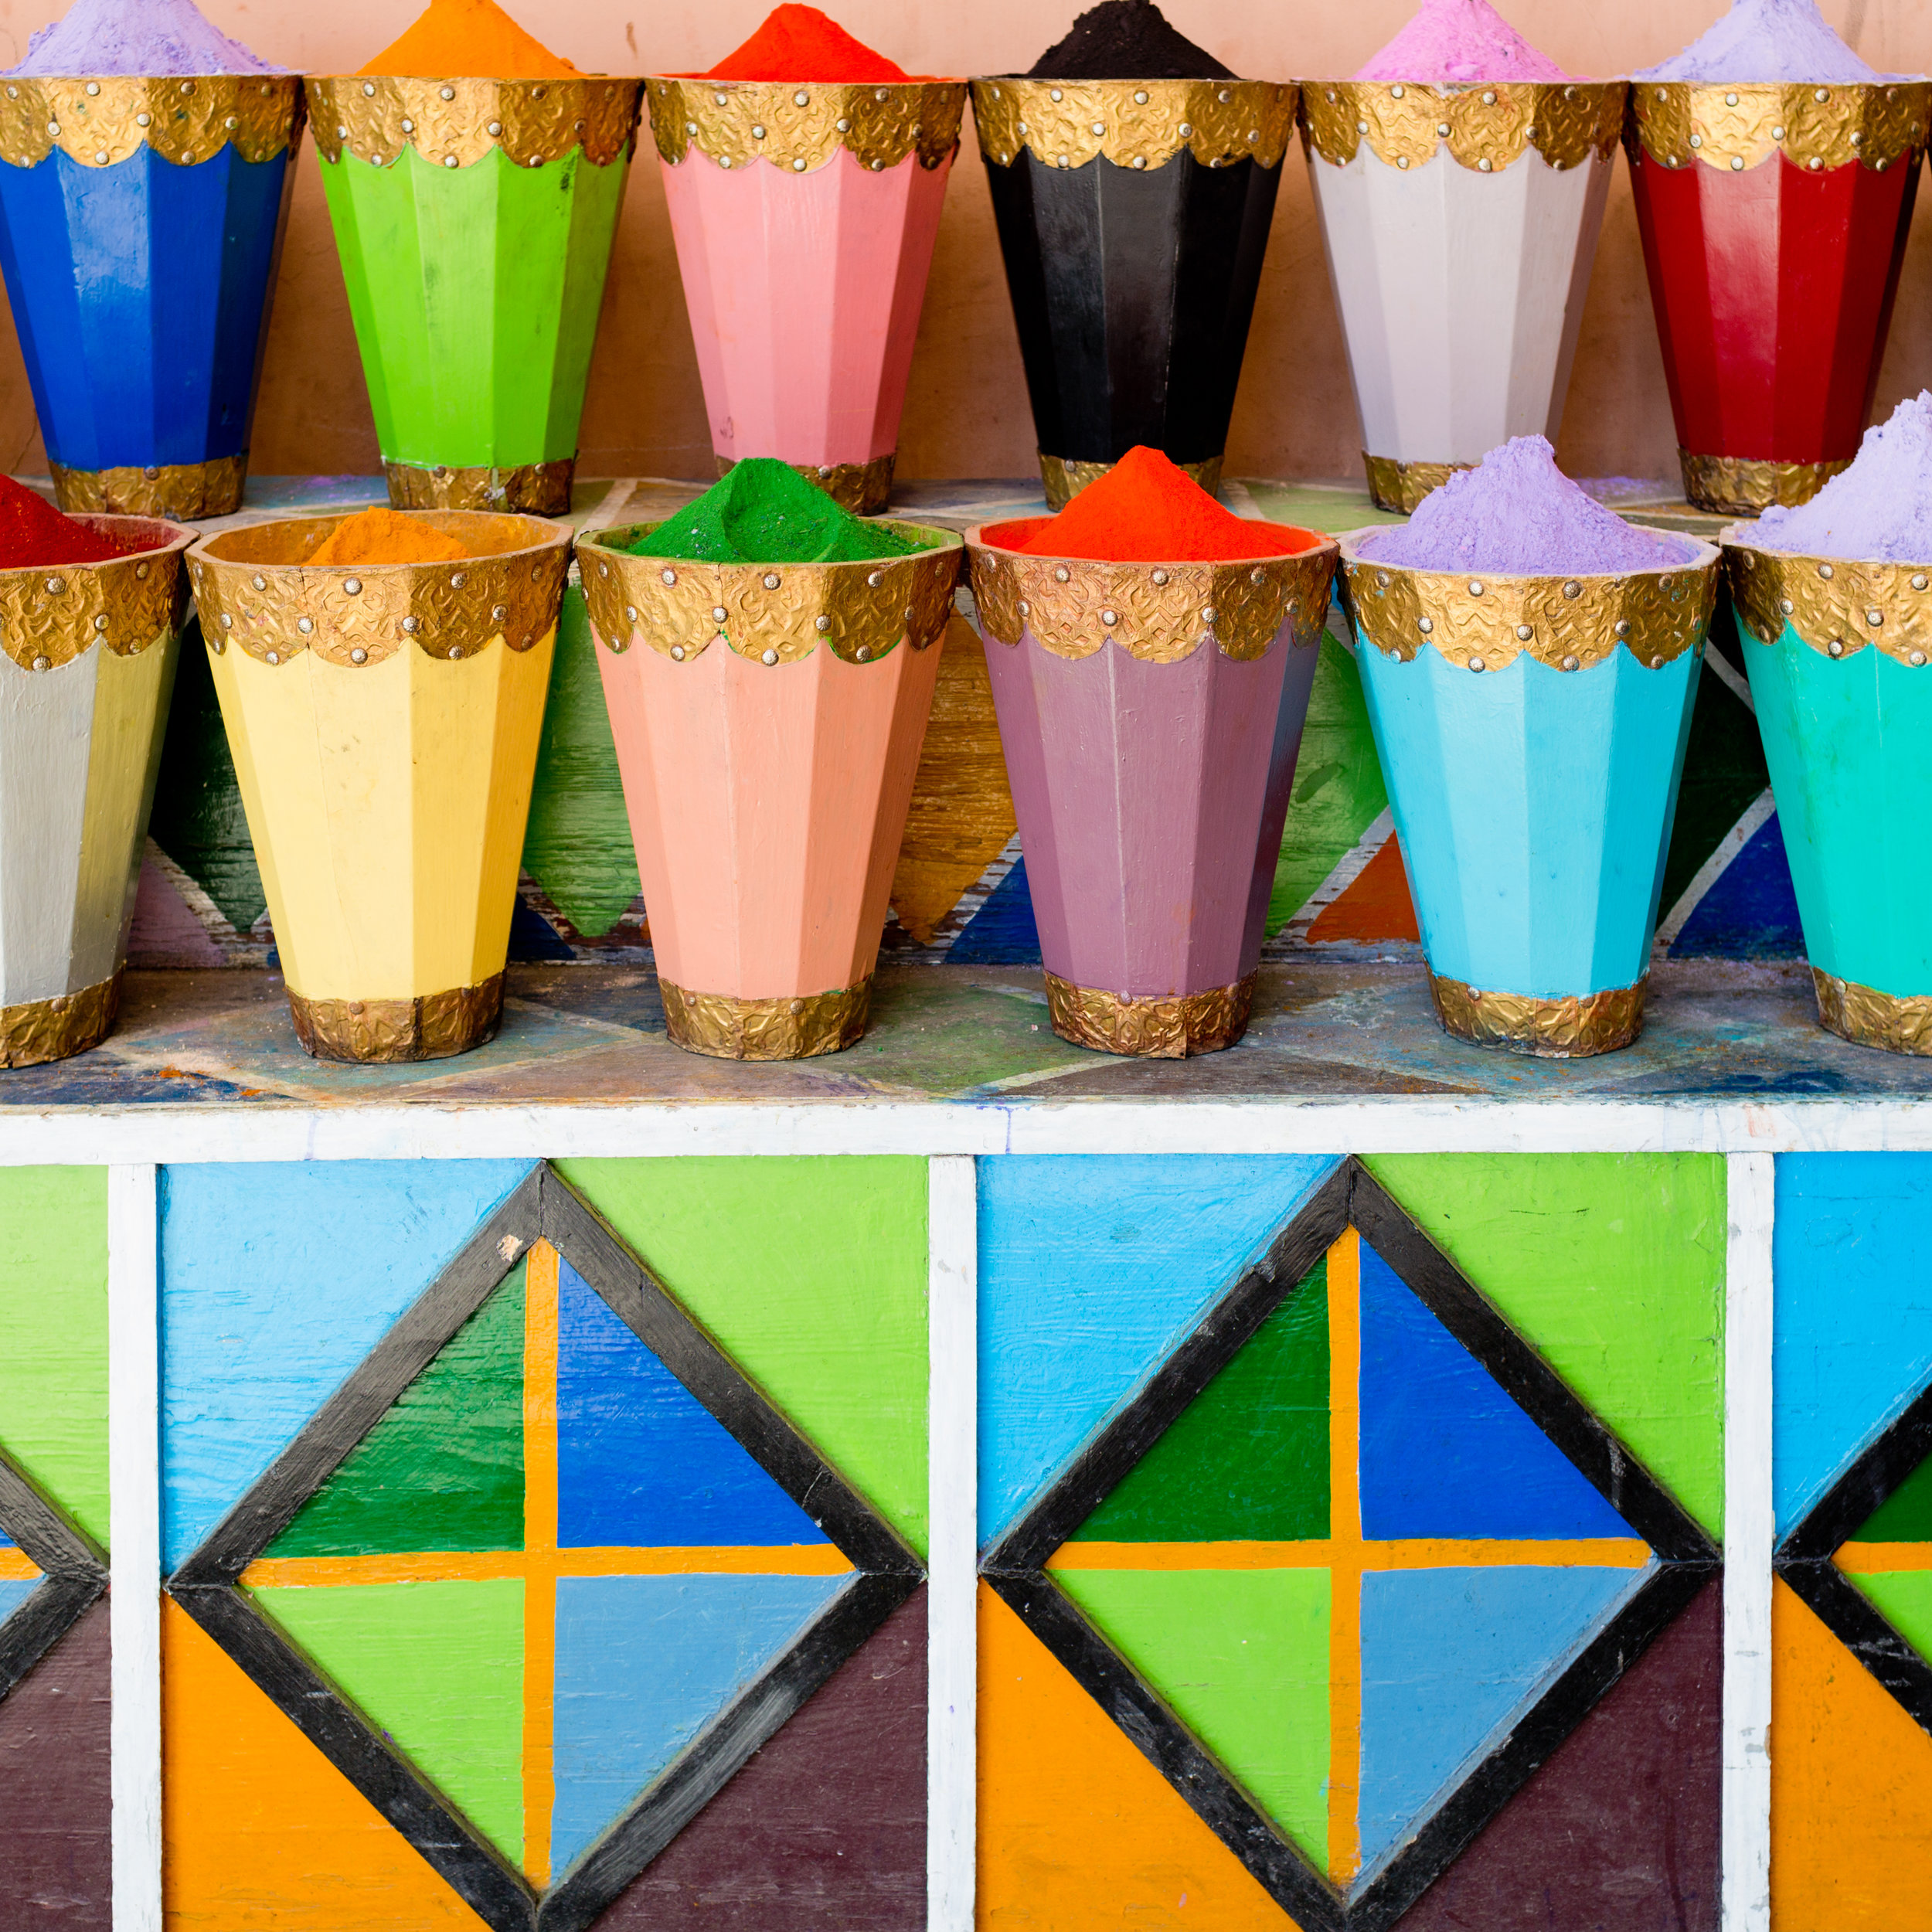 colorful photo of dyes in Morocco - print available on Etsy